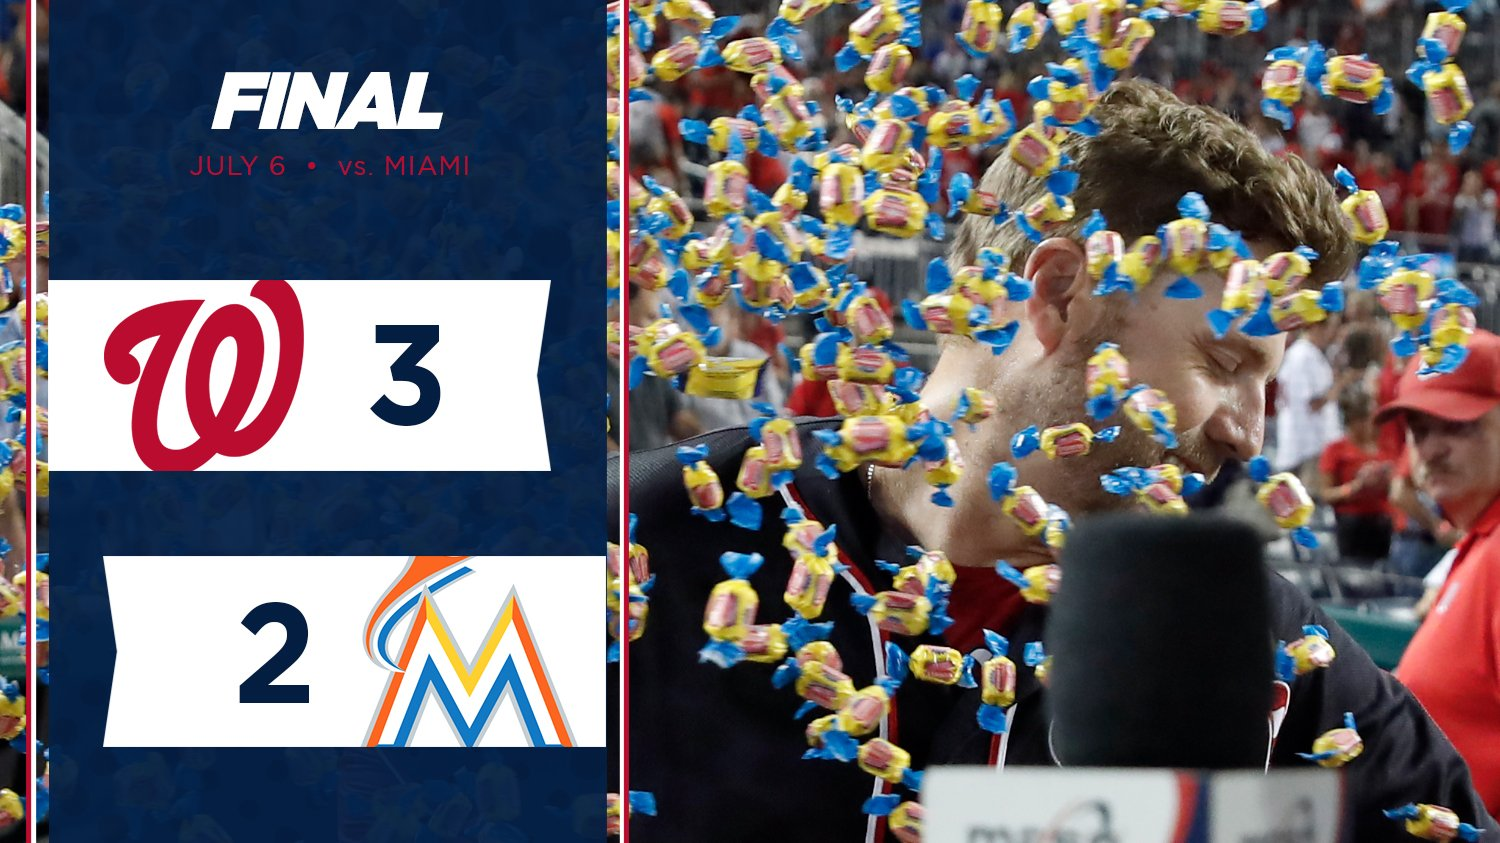 Reynolds left his Mark in his lone AB tonight.  RECAP // https://t.co/8wGhRkc9NV https://t.co/zpYchhdJx7